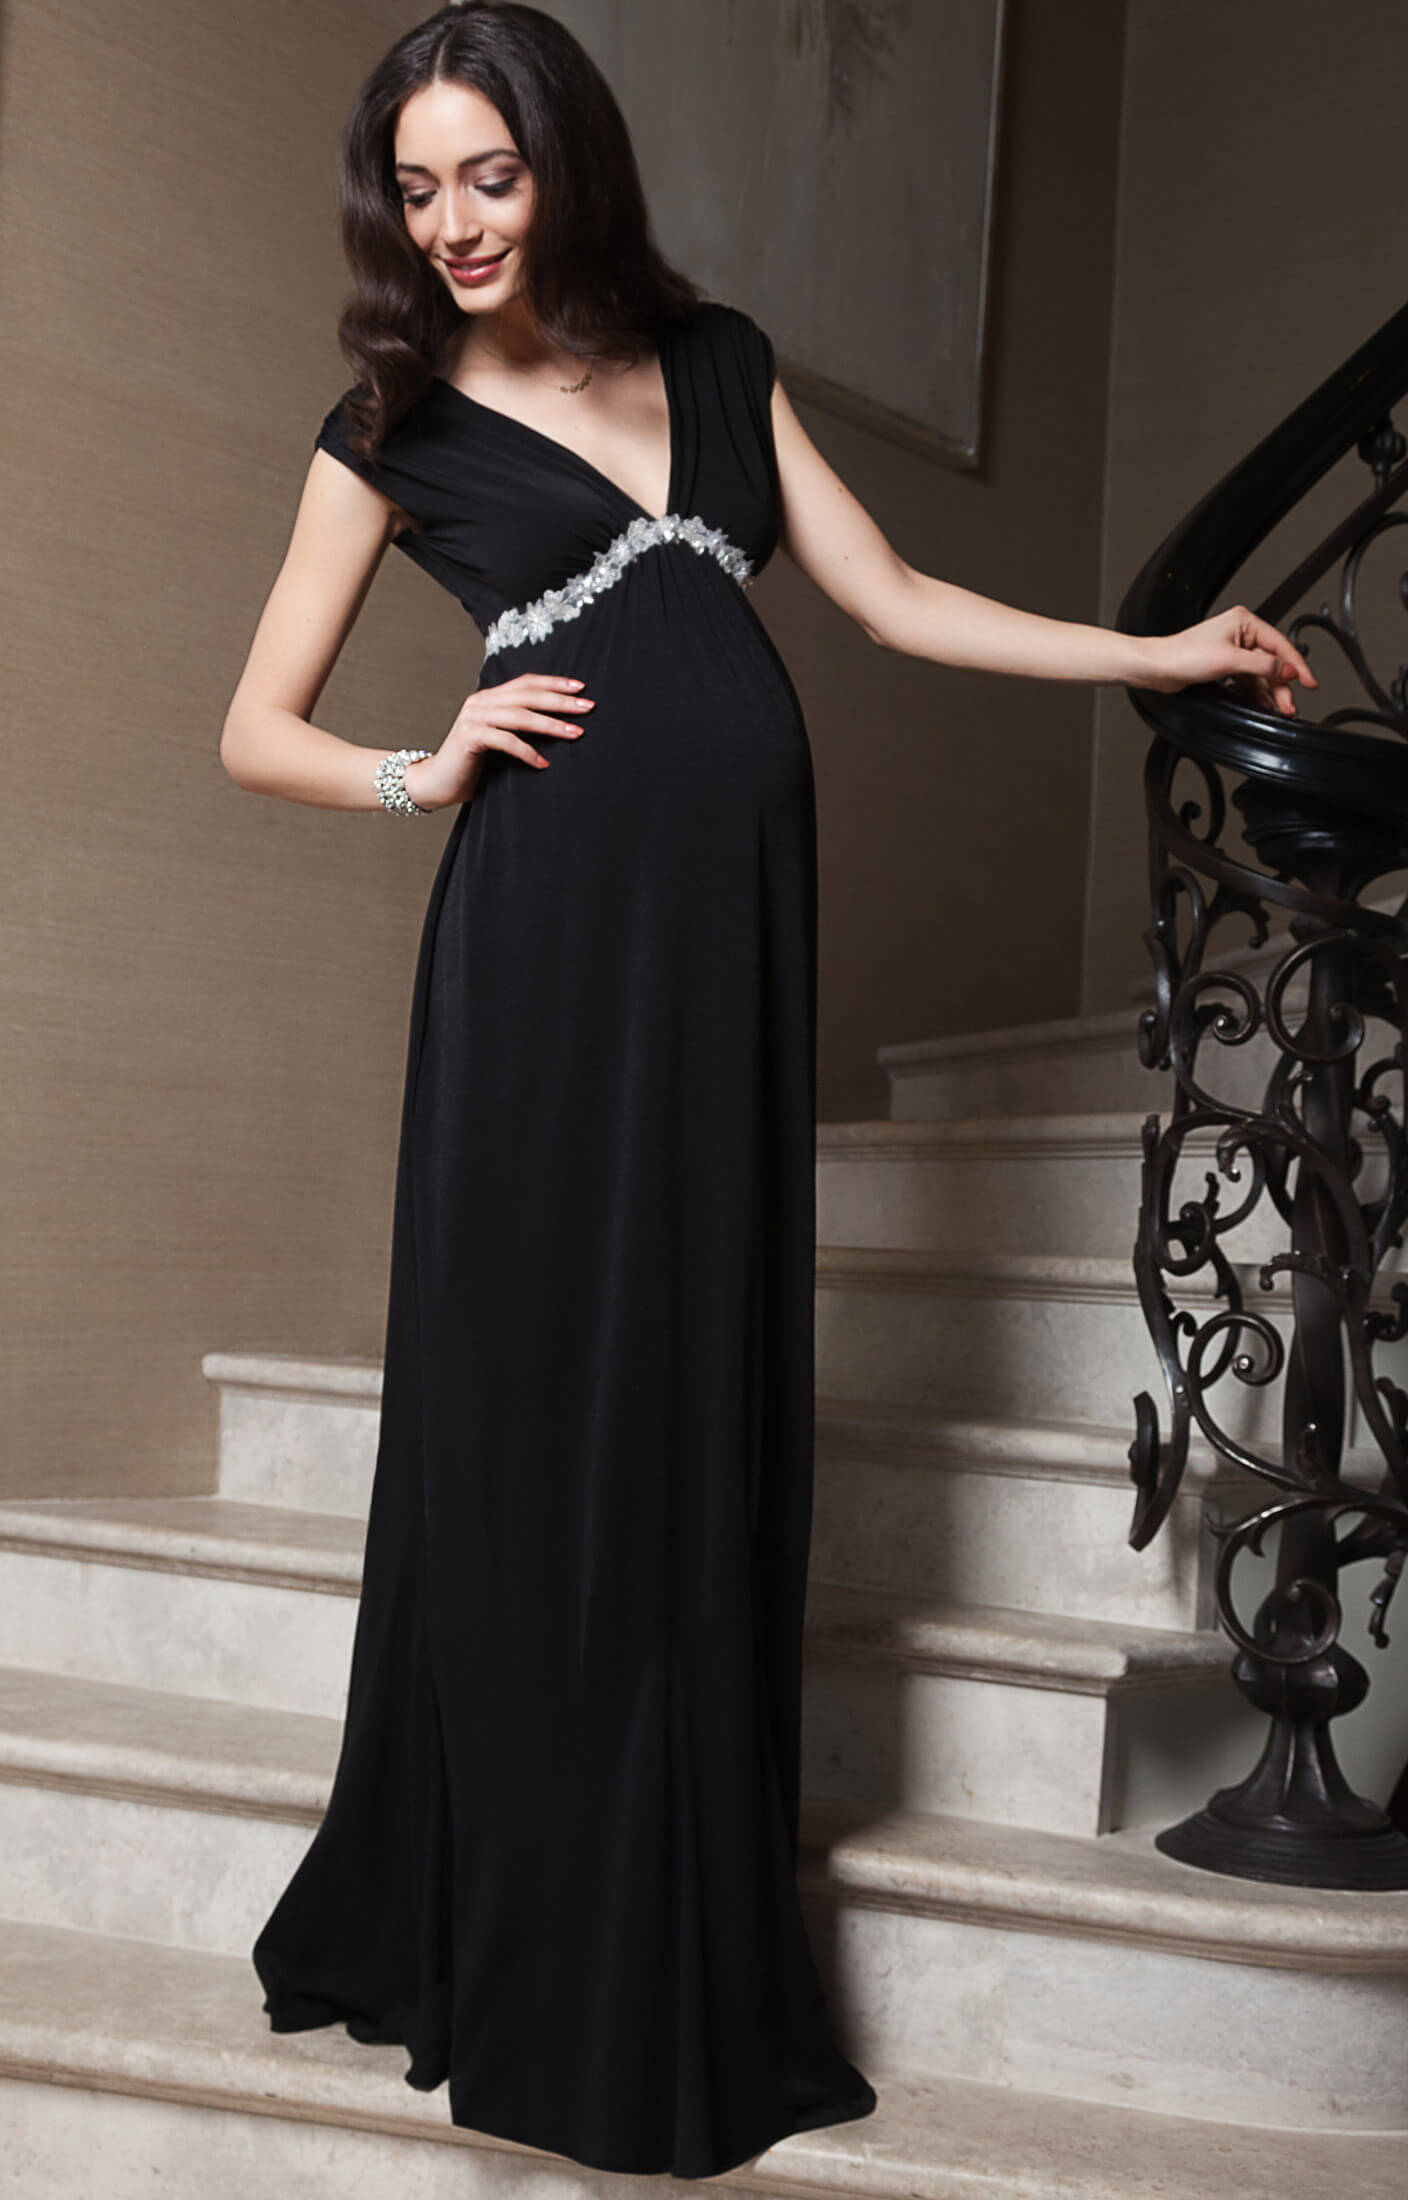 Aurora maternity gown long black maternity wedding dresses aurora maternity gown long black maternity wedding dresses evening wear and party clothes by tiffany rose ombrellifo Gallery